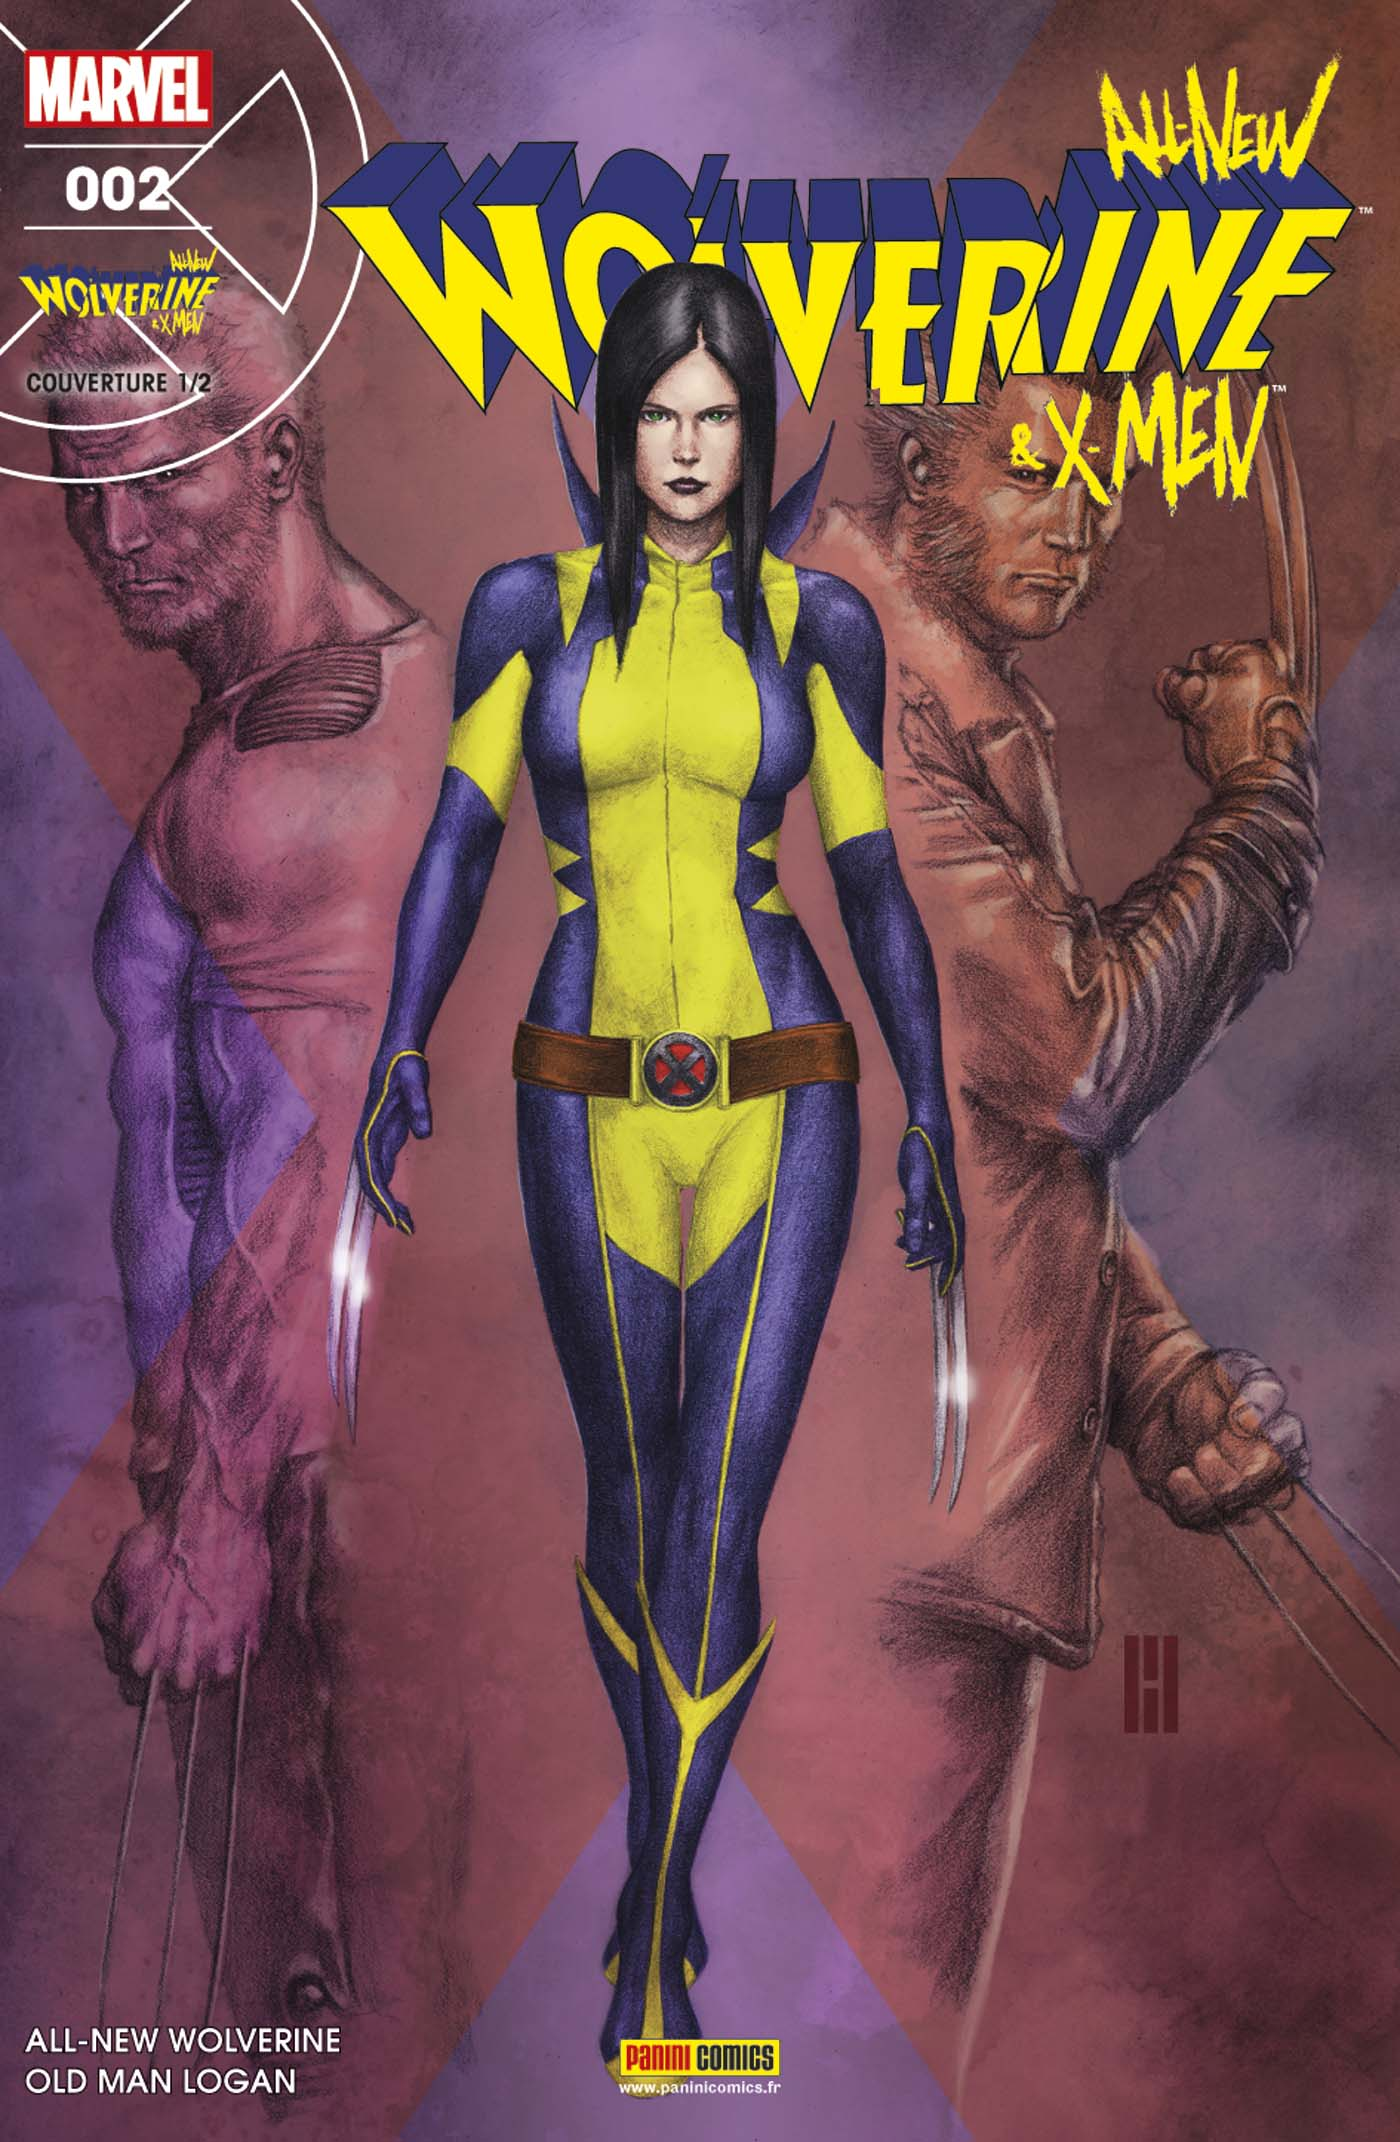 ALL-NEW WOLVERINE &  X-MEN 2 (Couv 1/2)